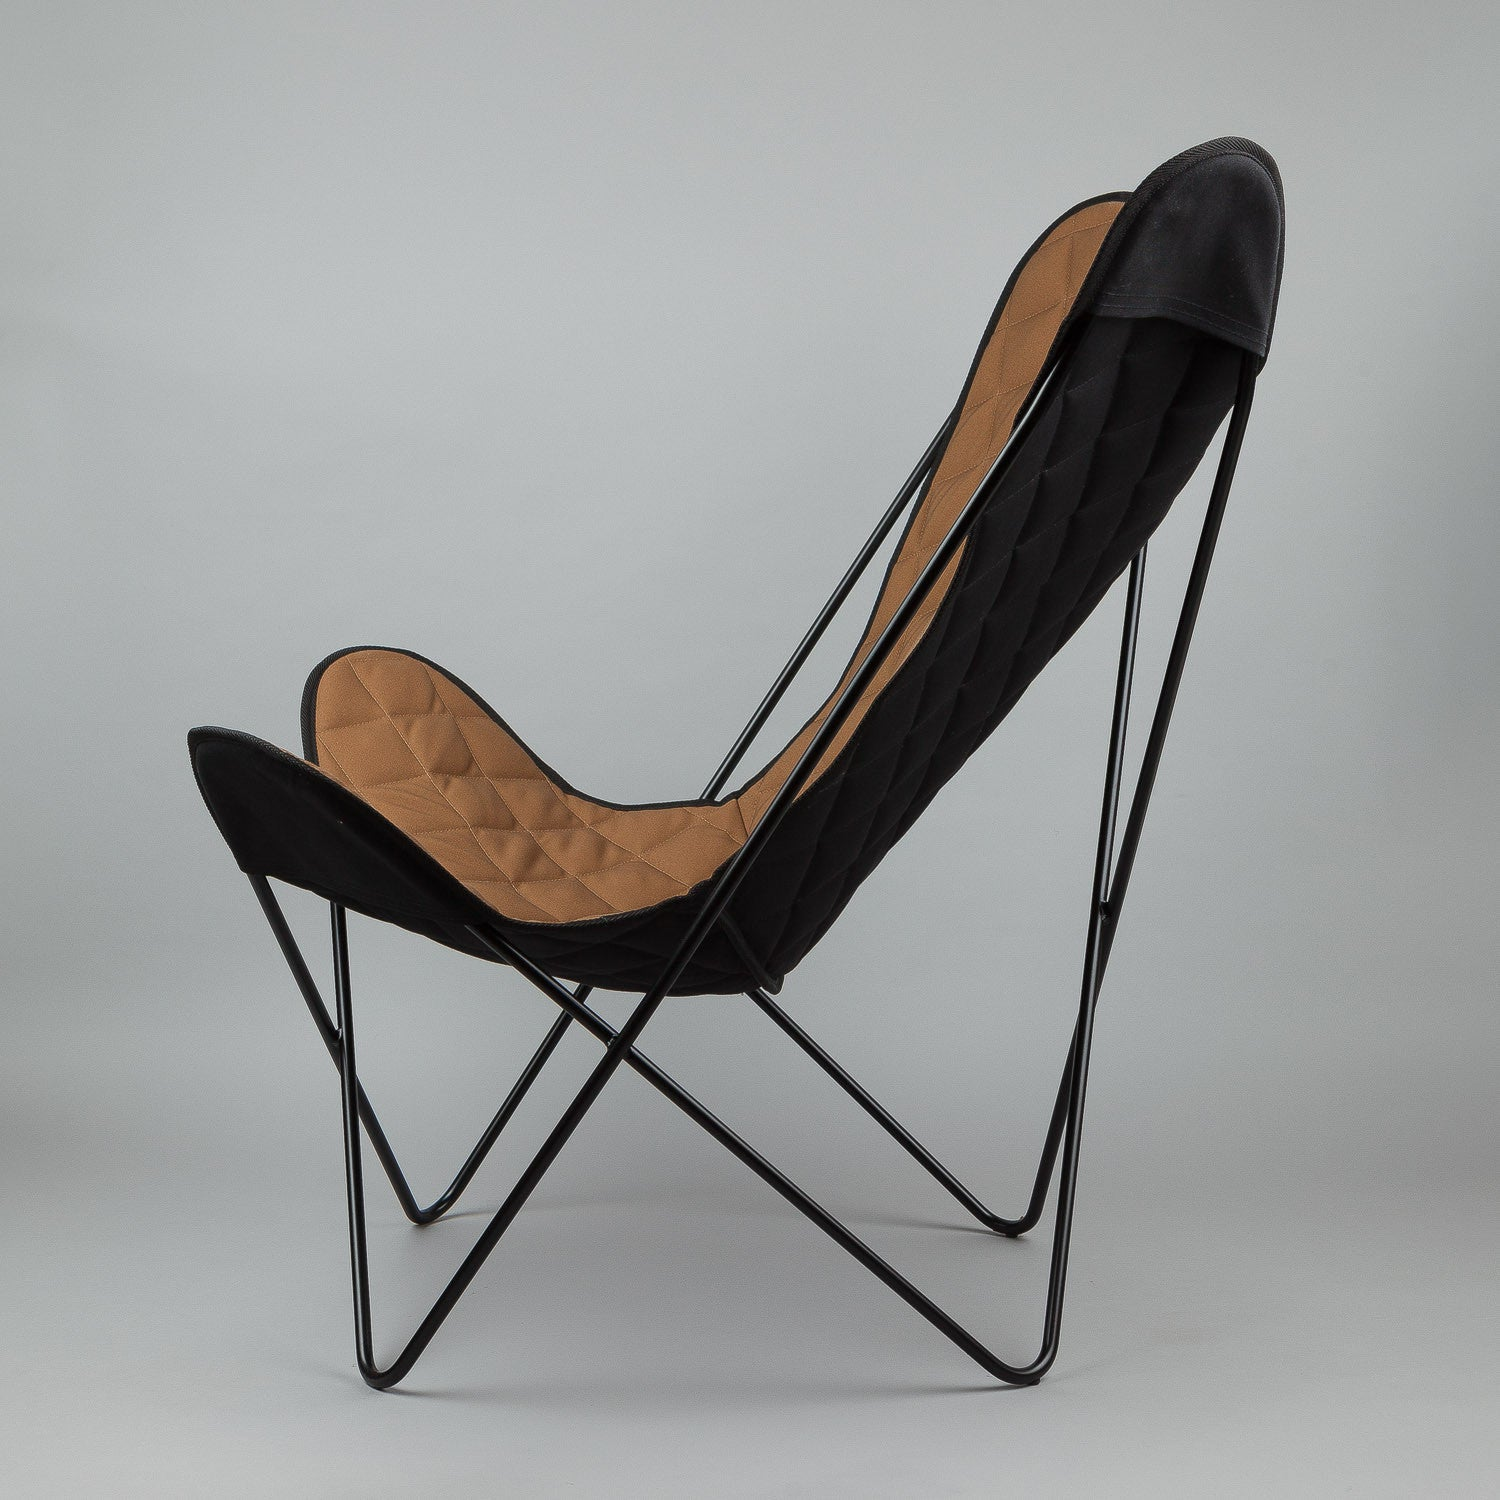 Carhartt Butterfly Chair - Black Steel Frame / Hamilton Brown Canvas